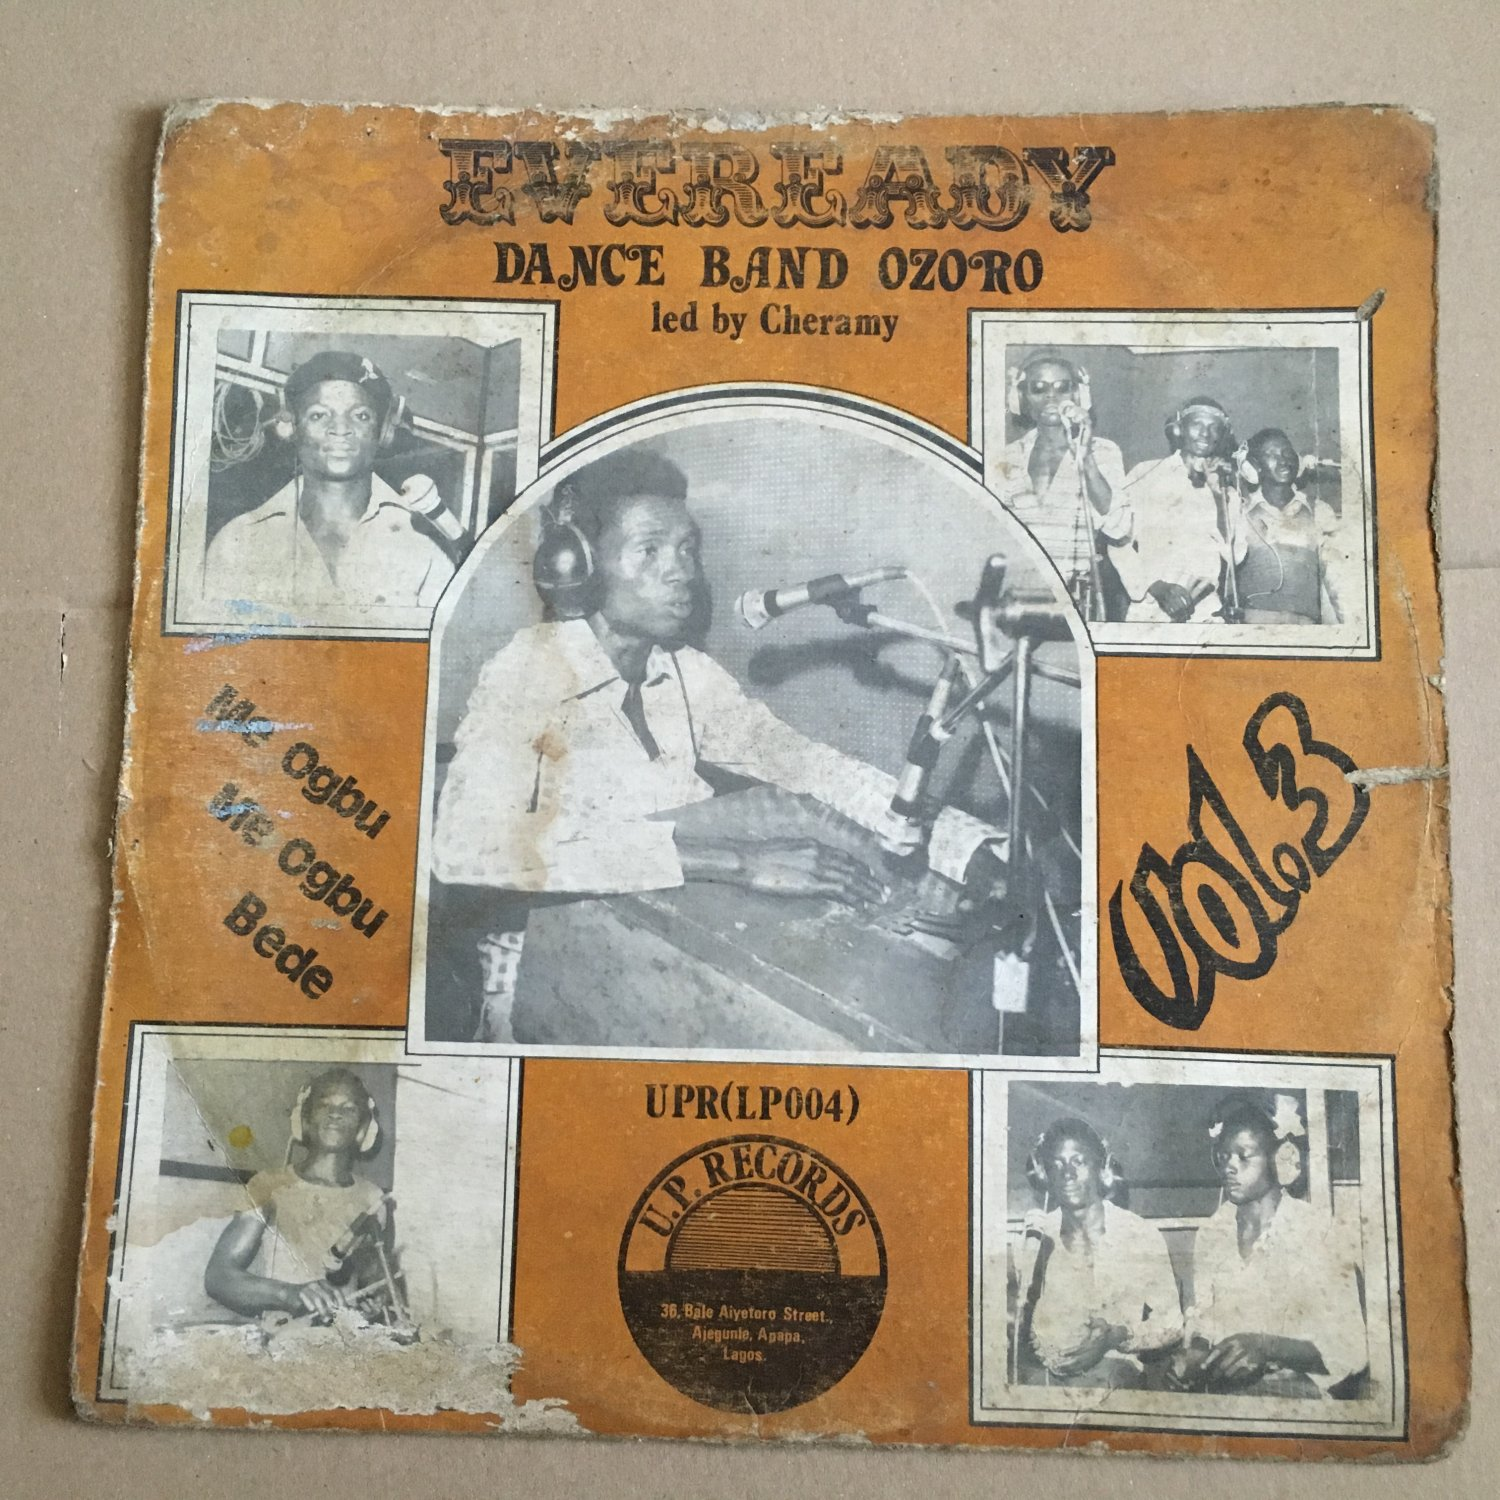 CHERAMY & HIS EVEREADY DANCE BAND OF OZORO LP vol. 3 NIGERIA mp3 LISTEN